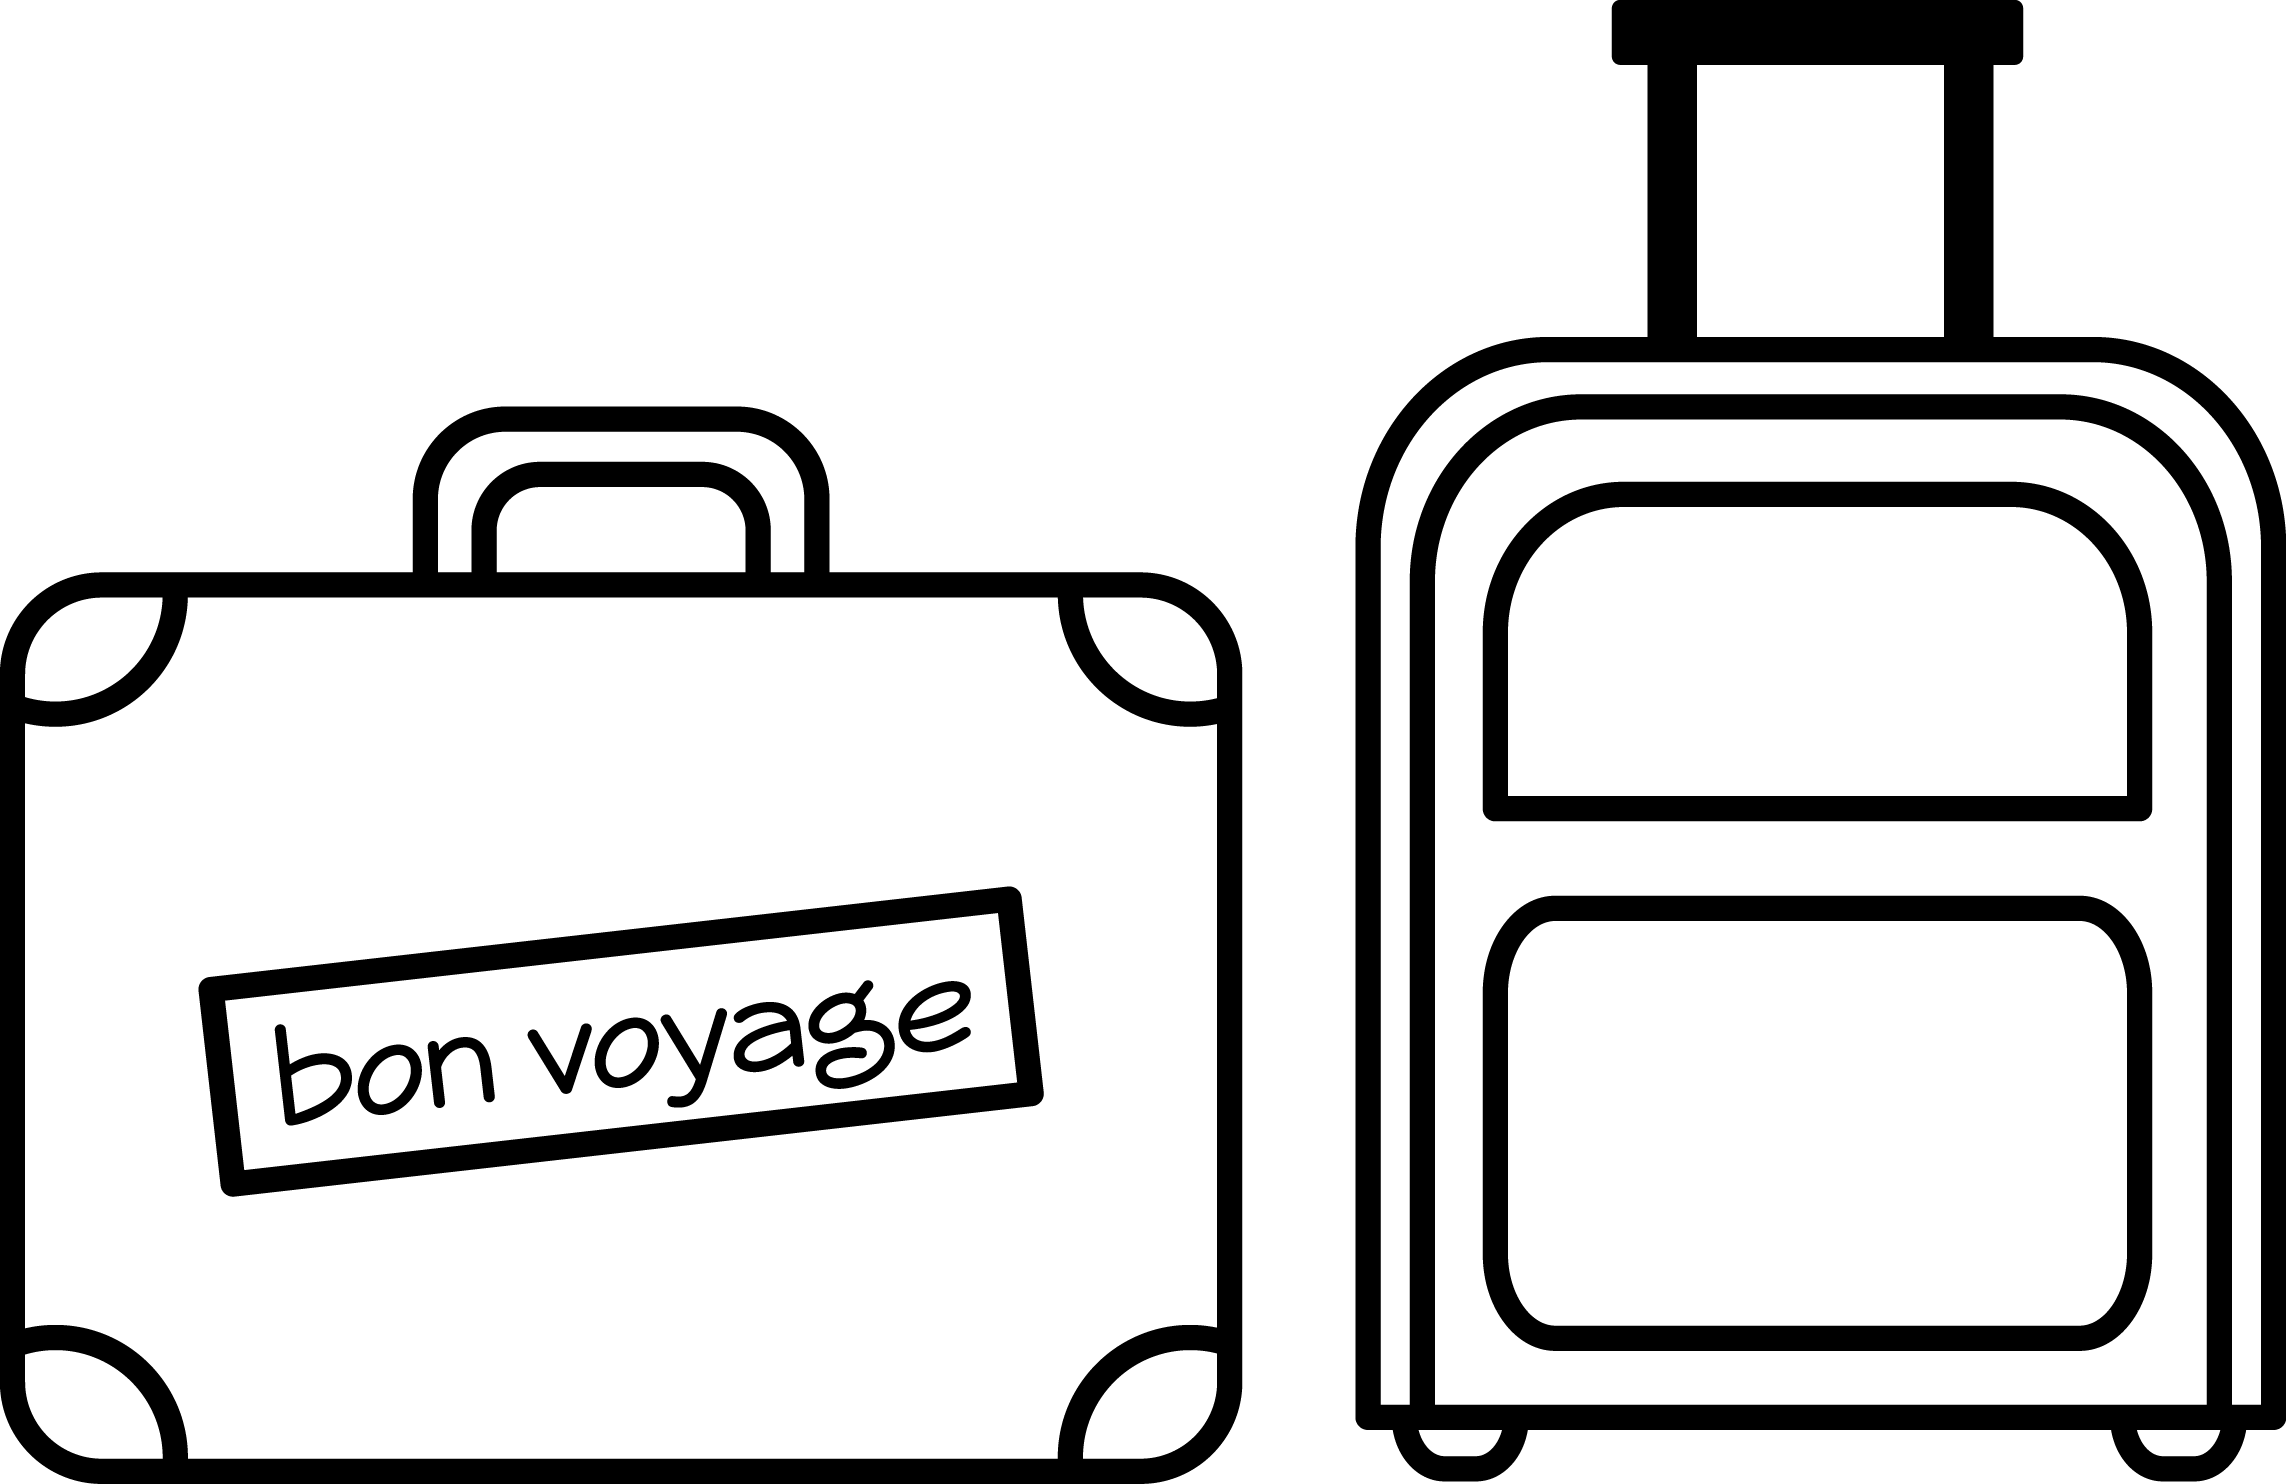 Stamp clipart luggage. Suitcase bags